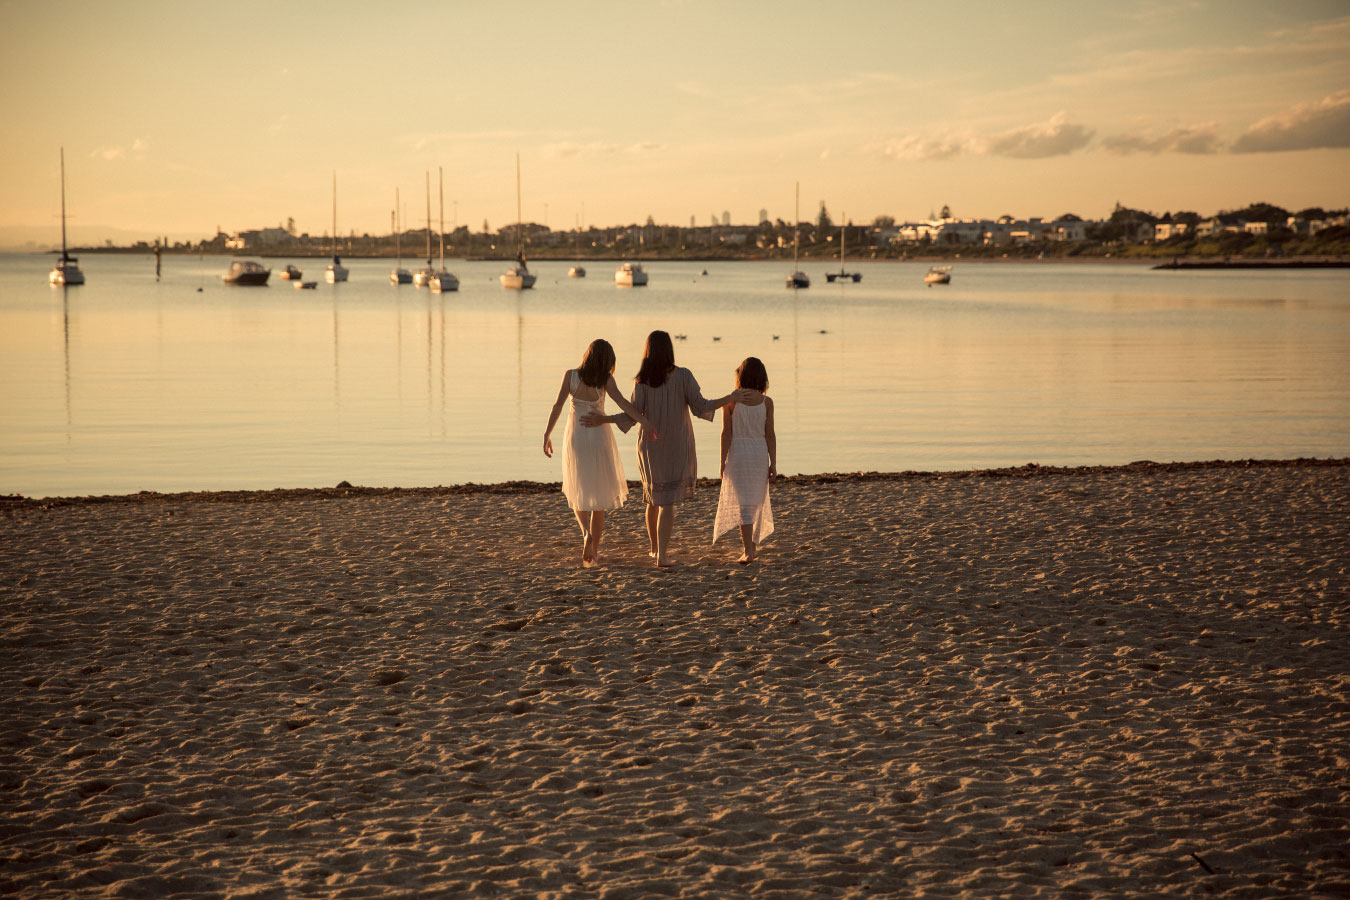 family-photographer-hampton-lifestyle-beach-sunset-81